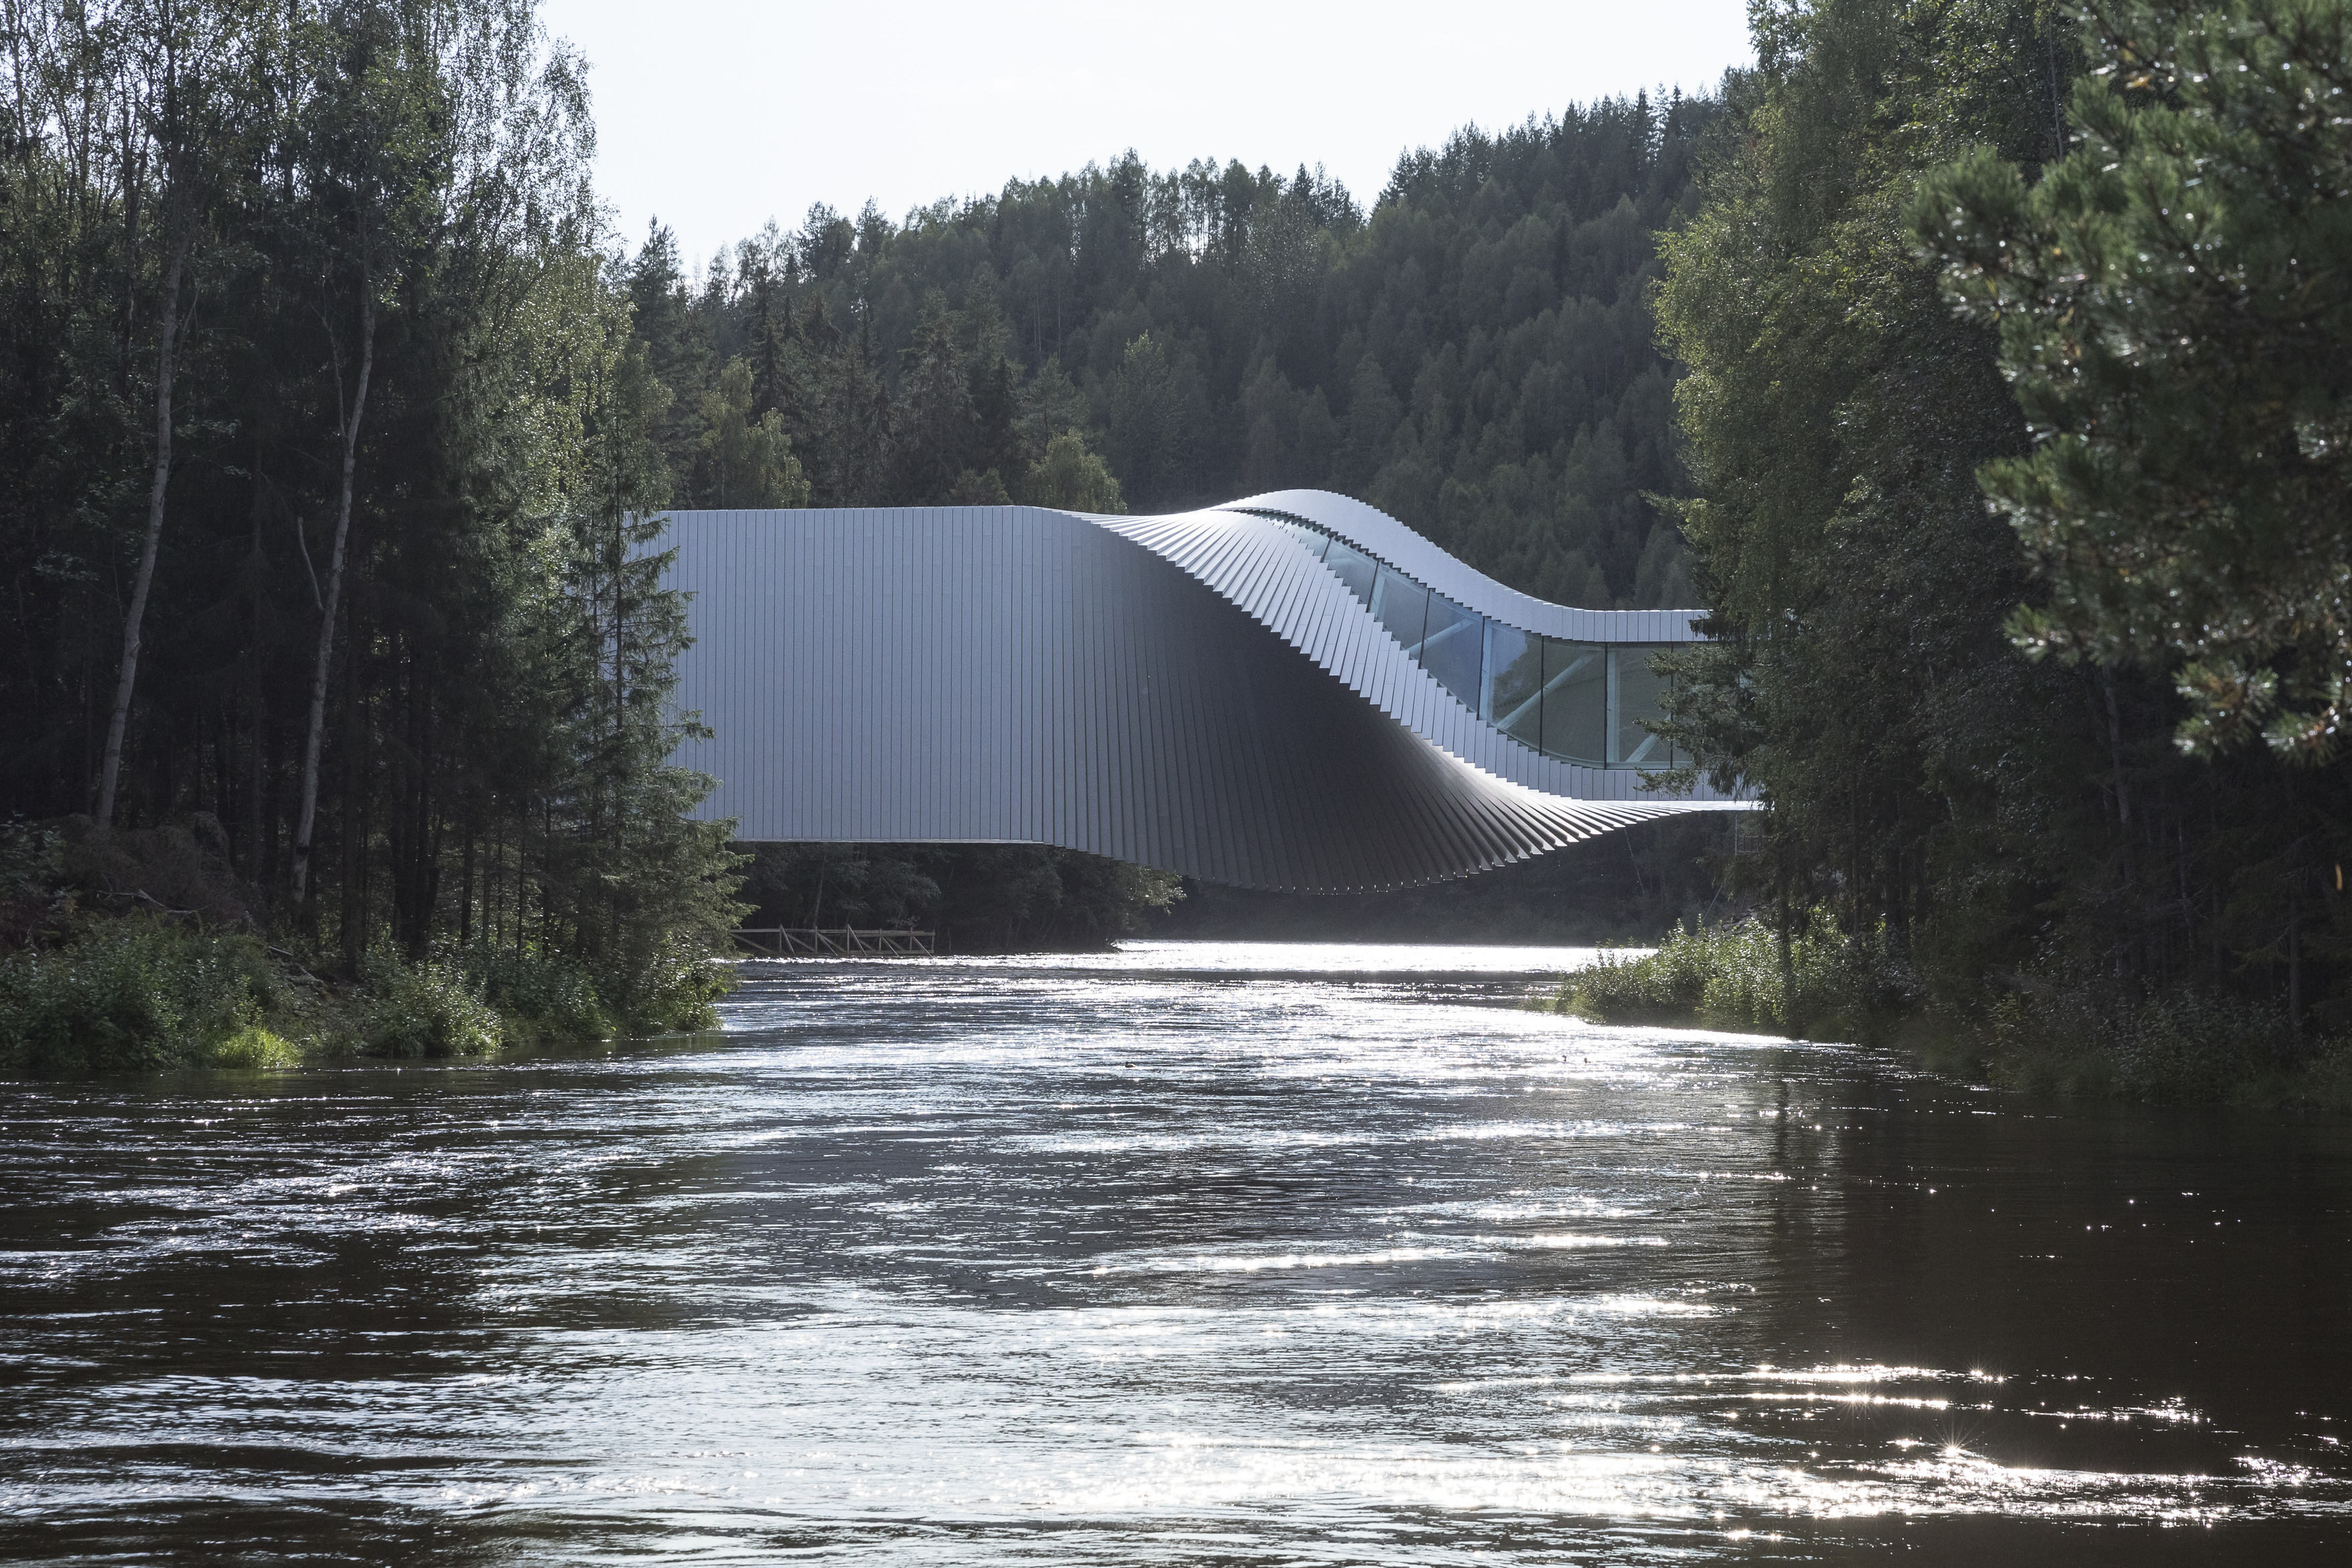 The Twist, Norway - Winner of International Project of the Year 2020